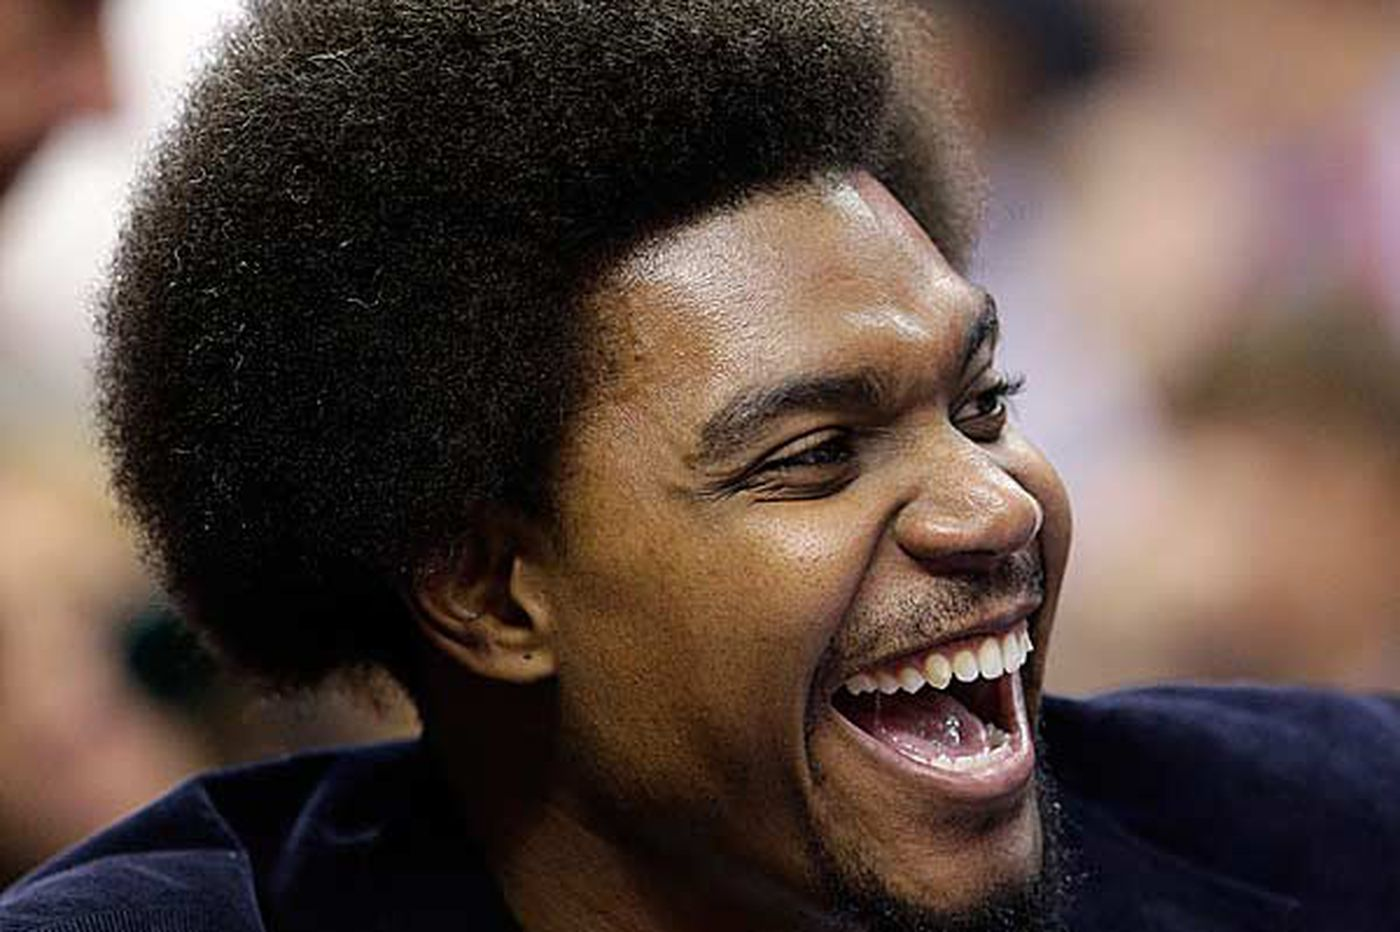 Lakers: If Andrew Bynum is healthy, the 76ers will have a star